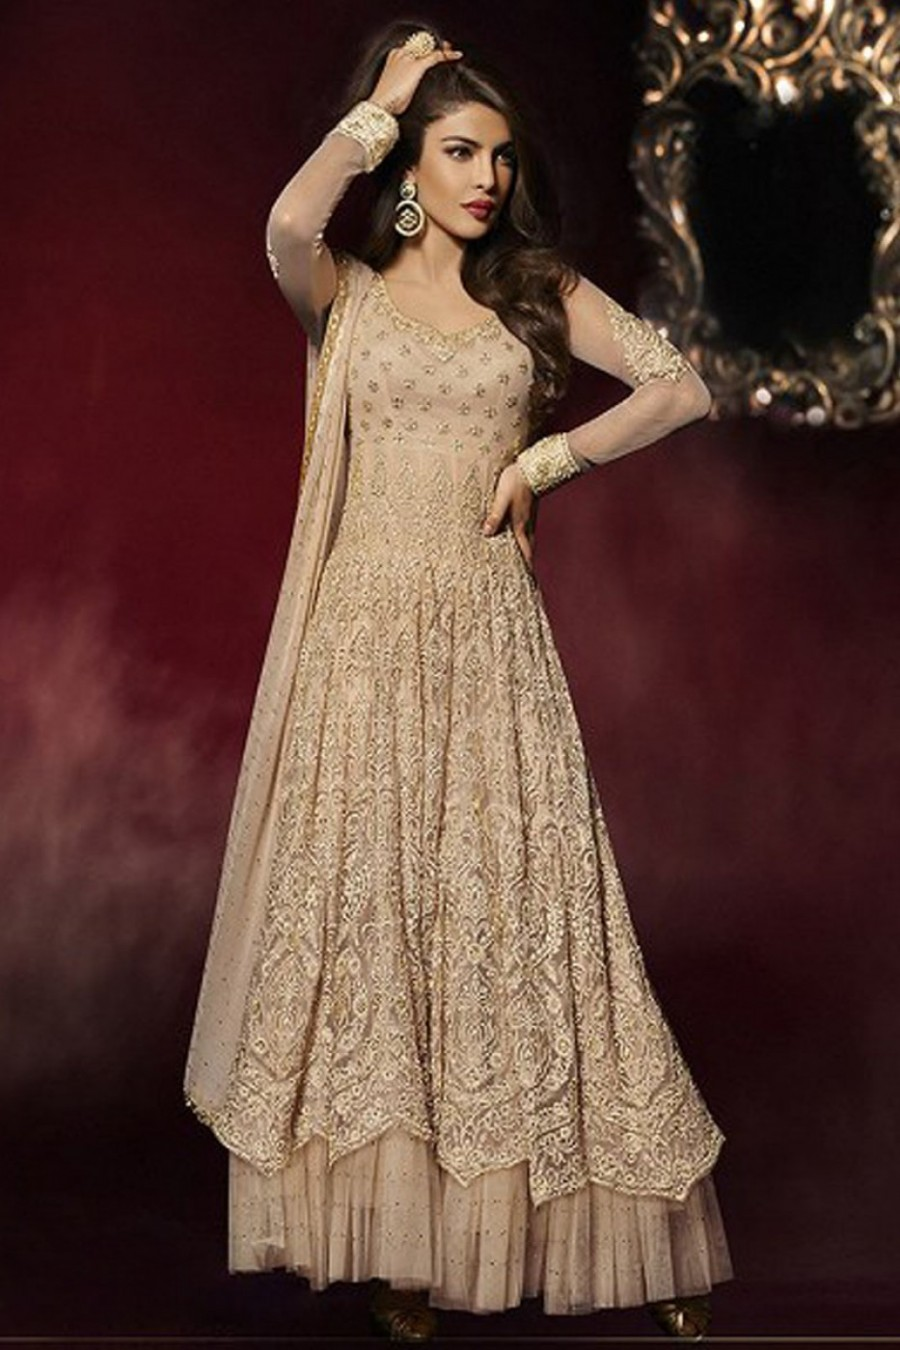 83dda0f2d Buy Priyanka Nude Beige Heavy Embroidered Bollywood Style Partywear Long  Floor Length Celebrity Anarkali Dress in